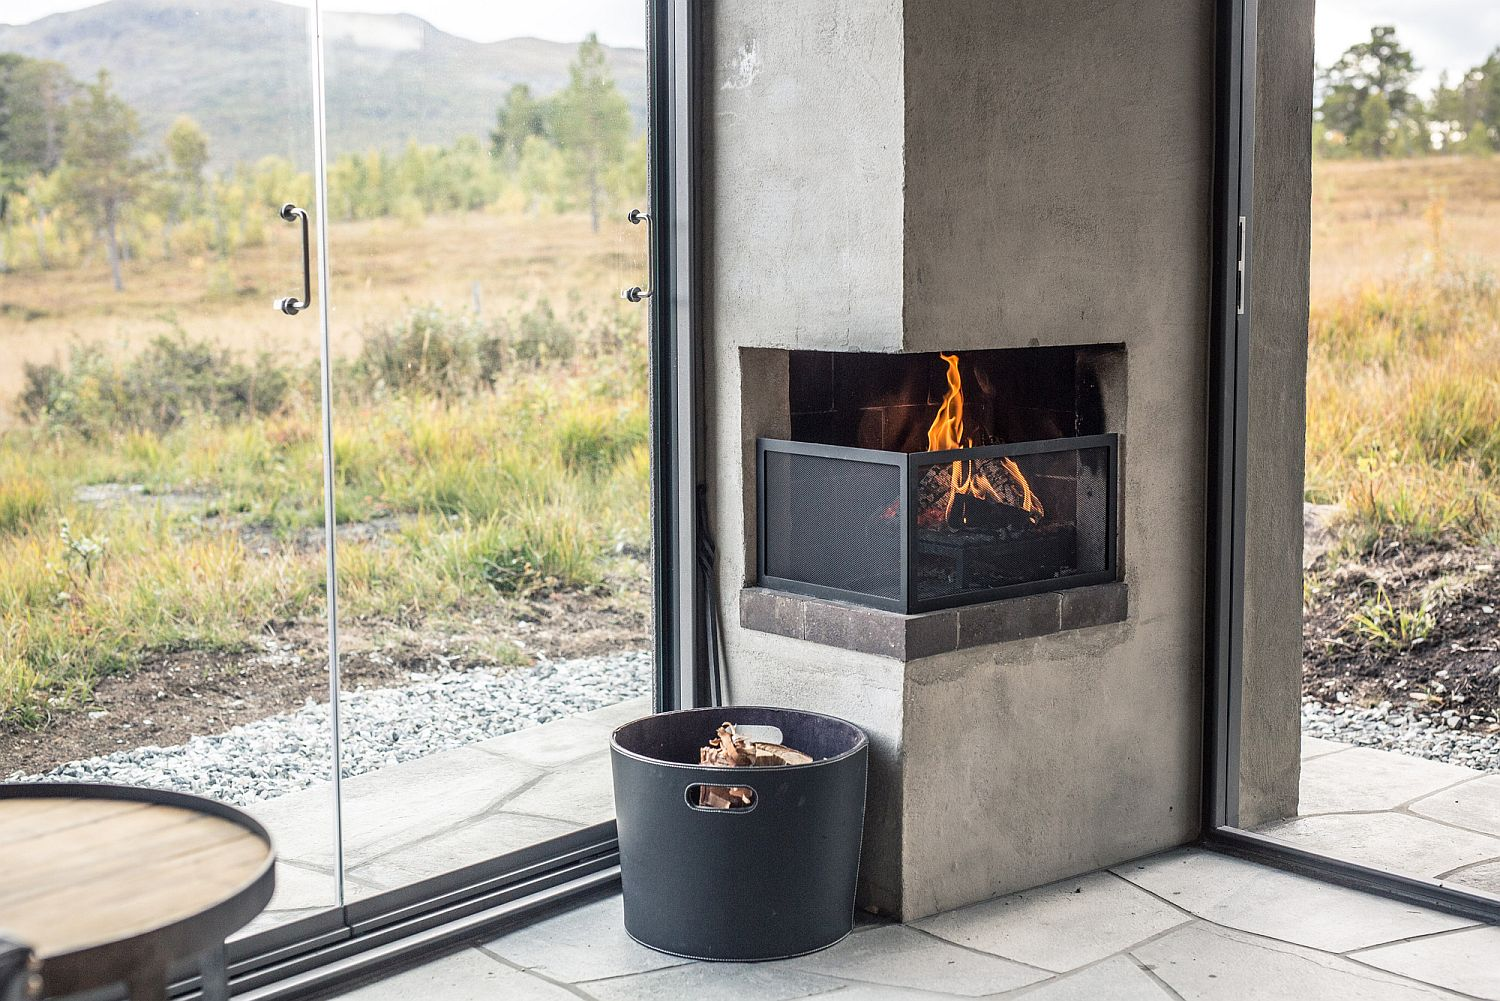 Small corner fireplace is built into the structure of the cabin